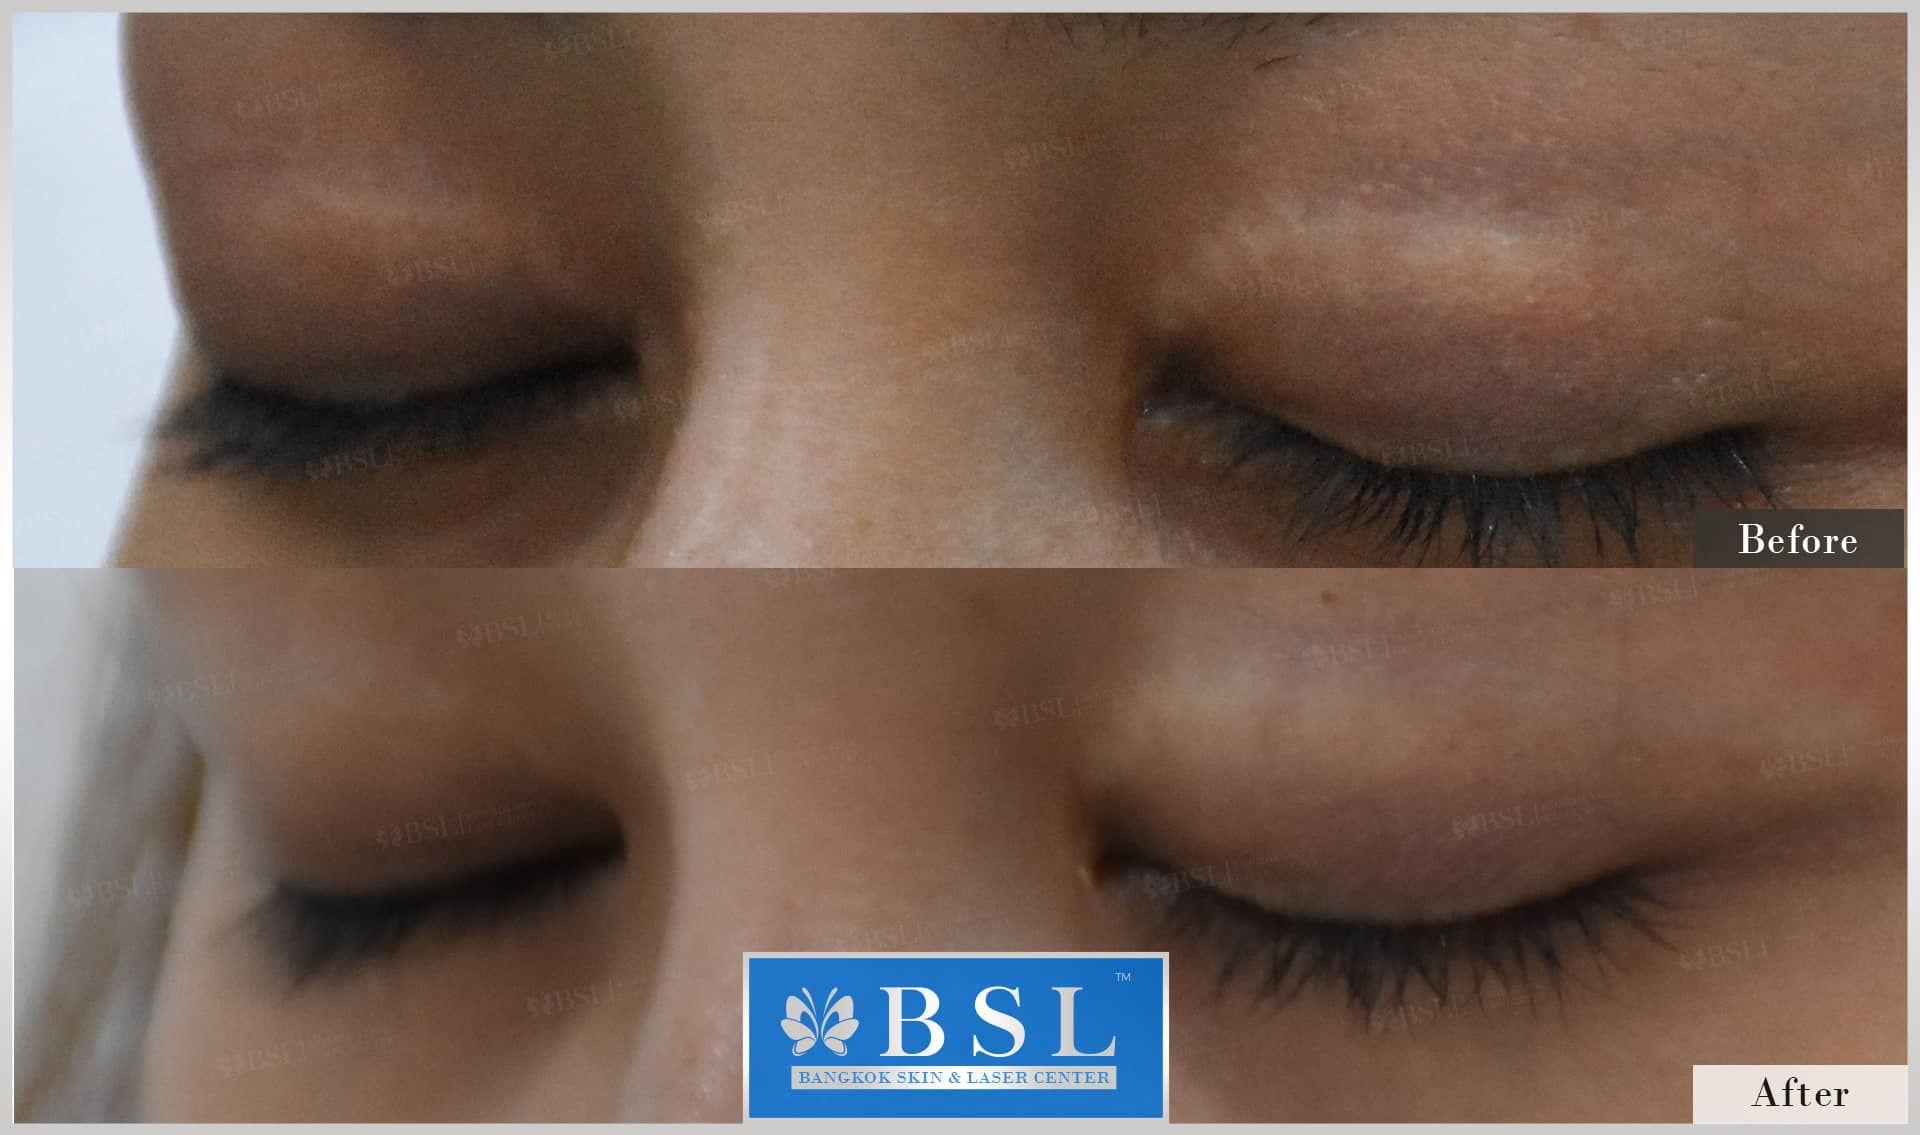 before-after-results-scar-treatment-004